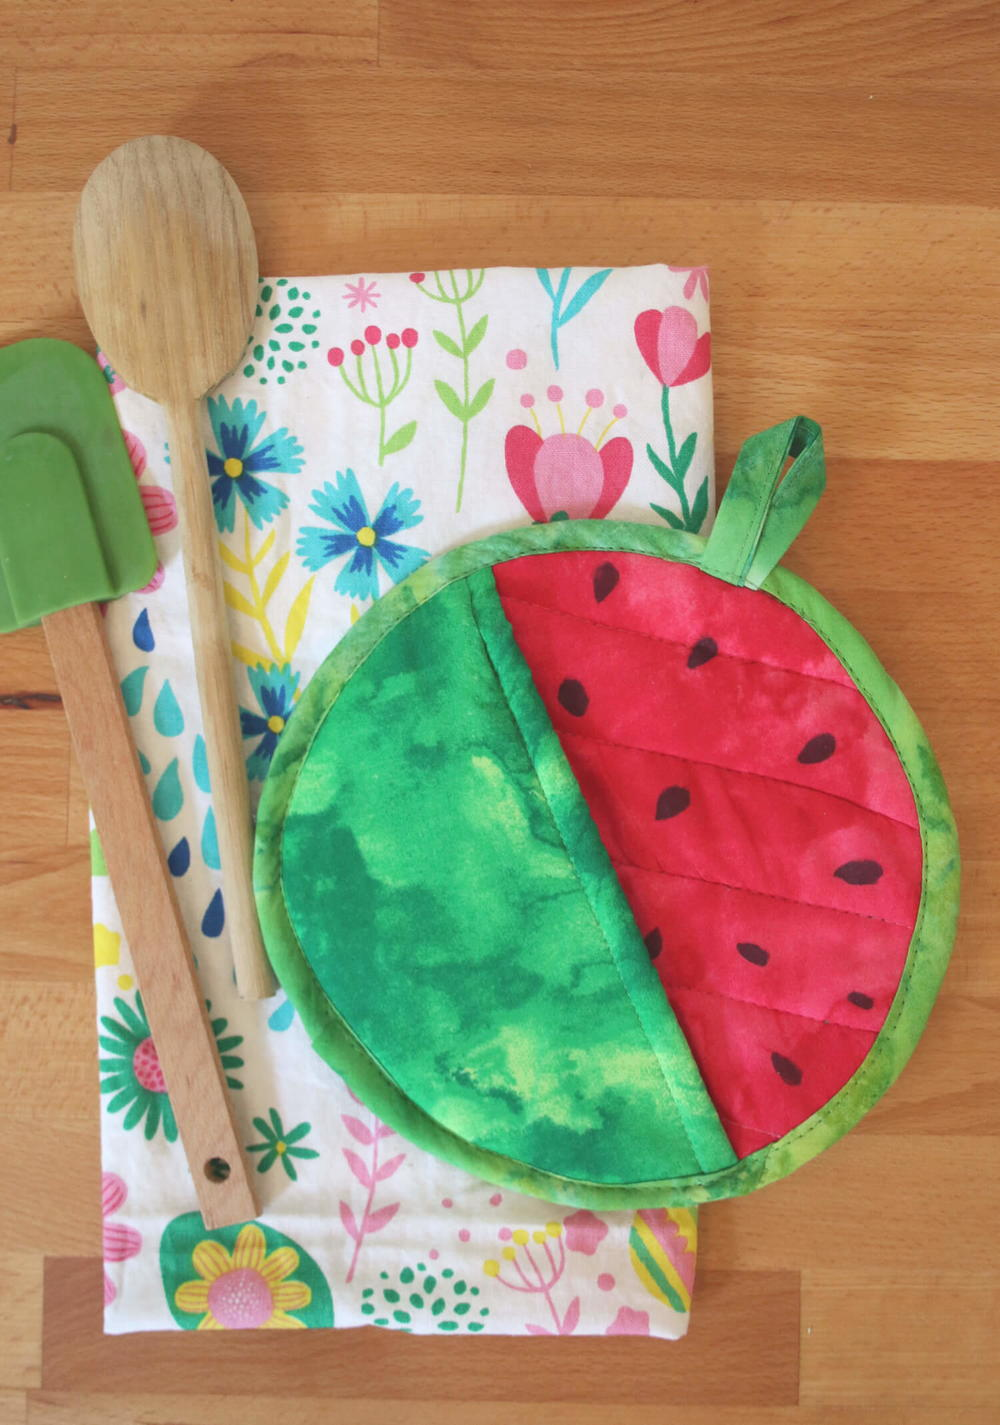 watermelon diy pot holder potholder sewing craft easy projects fat quarter very crafts summer patterns tutorial simple project holders potholders